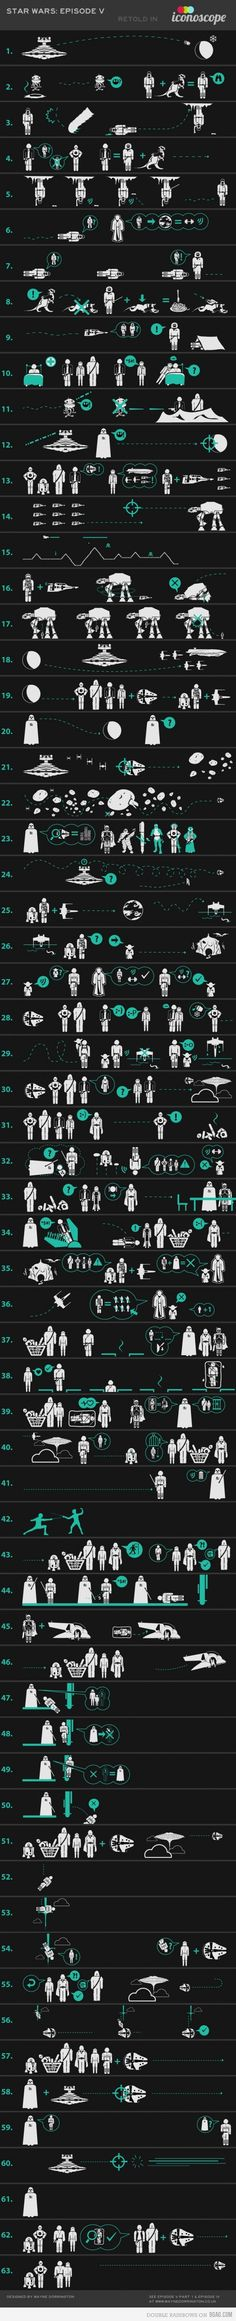 Star wars in infograph